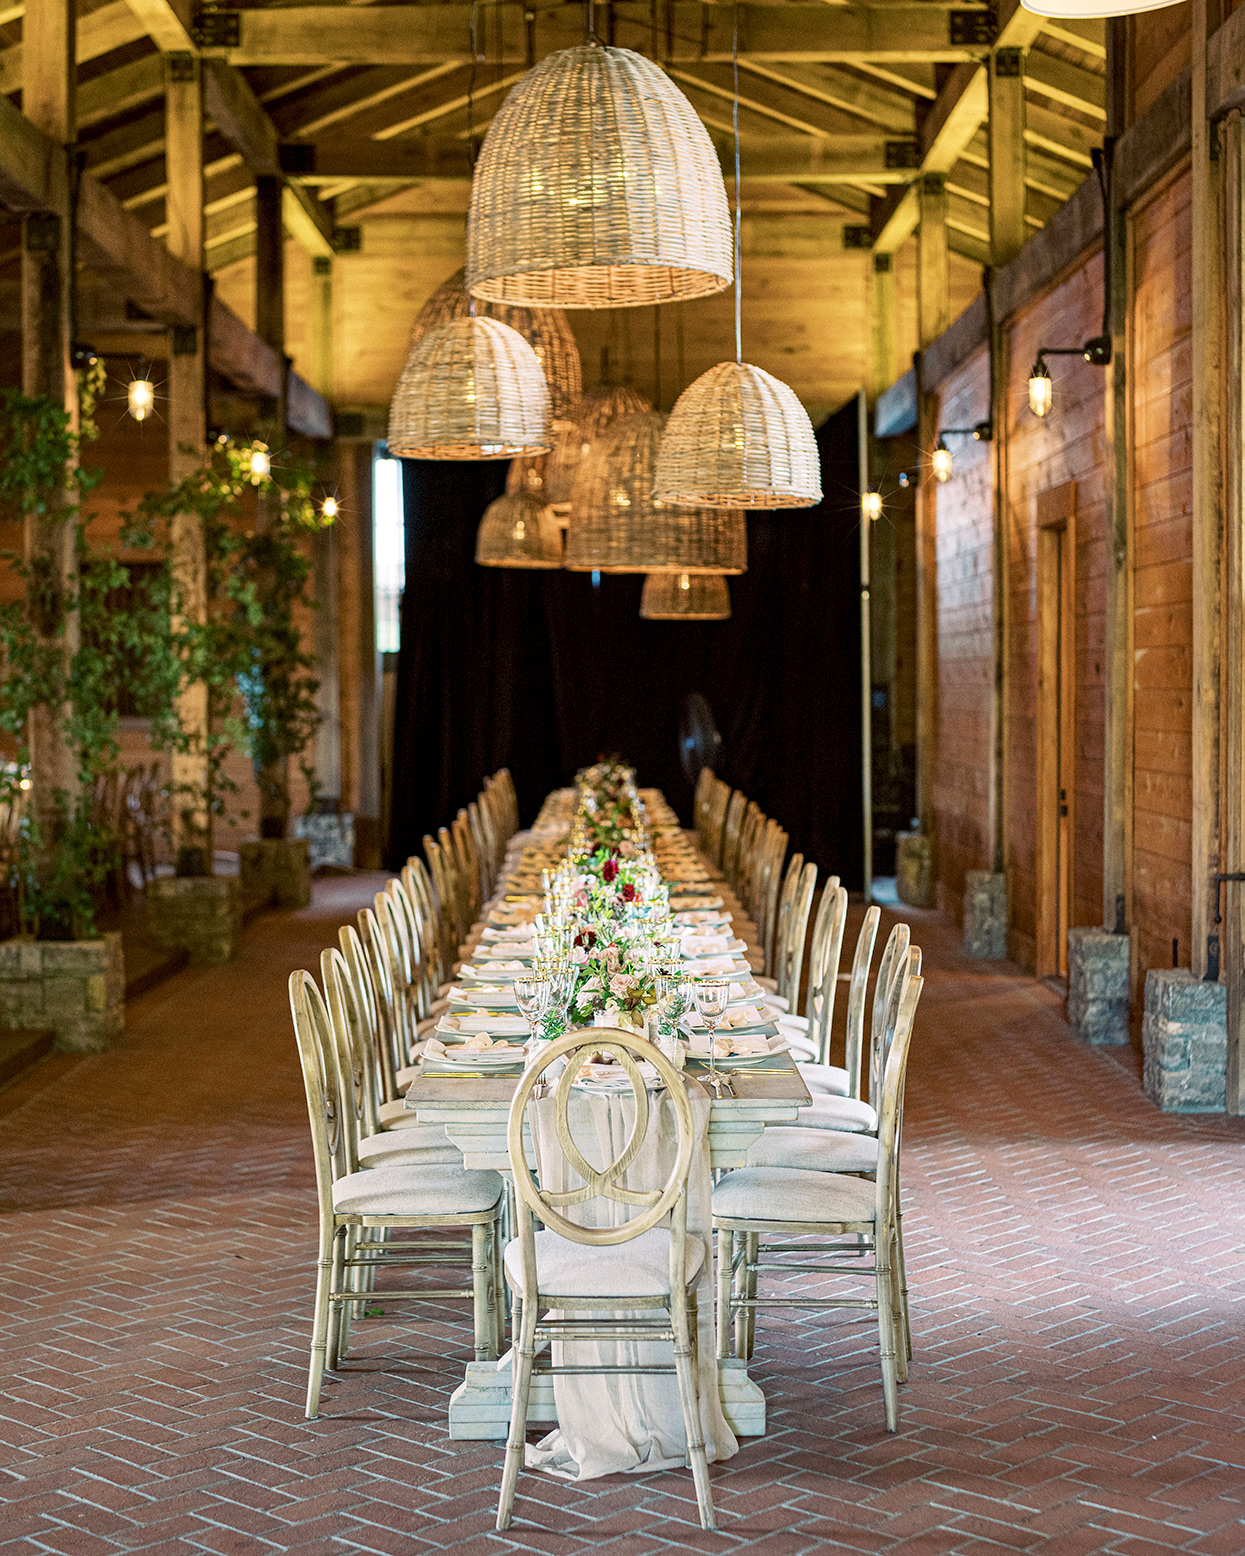 Claire and Dan's wedding reception banquet table on brick